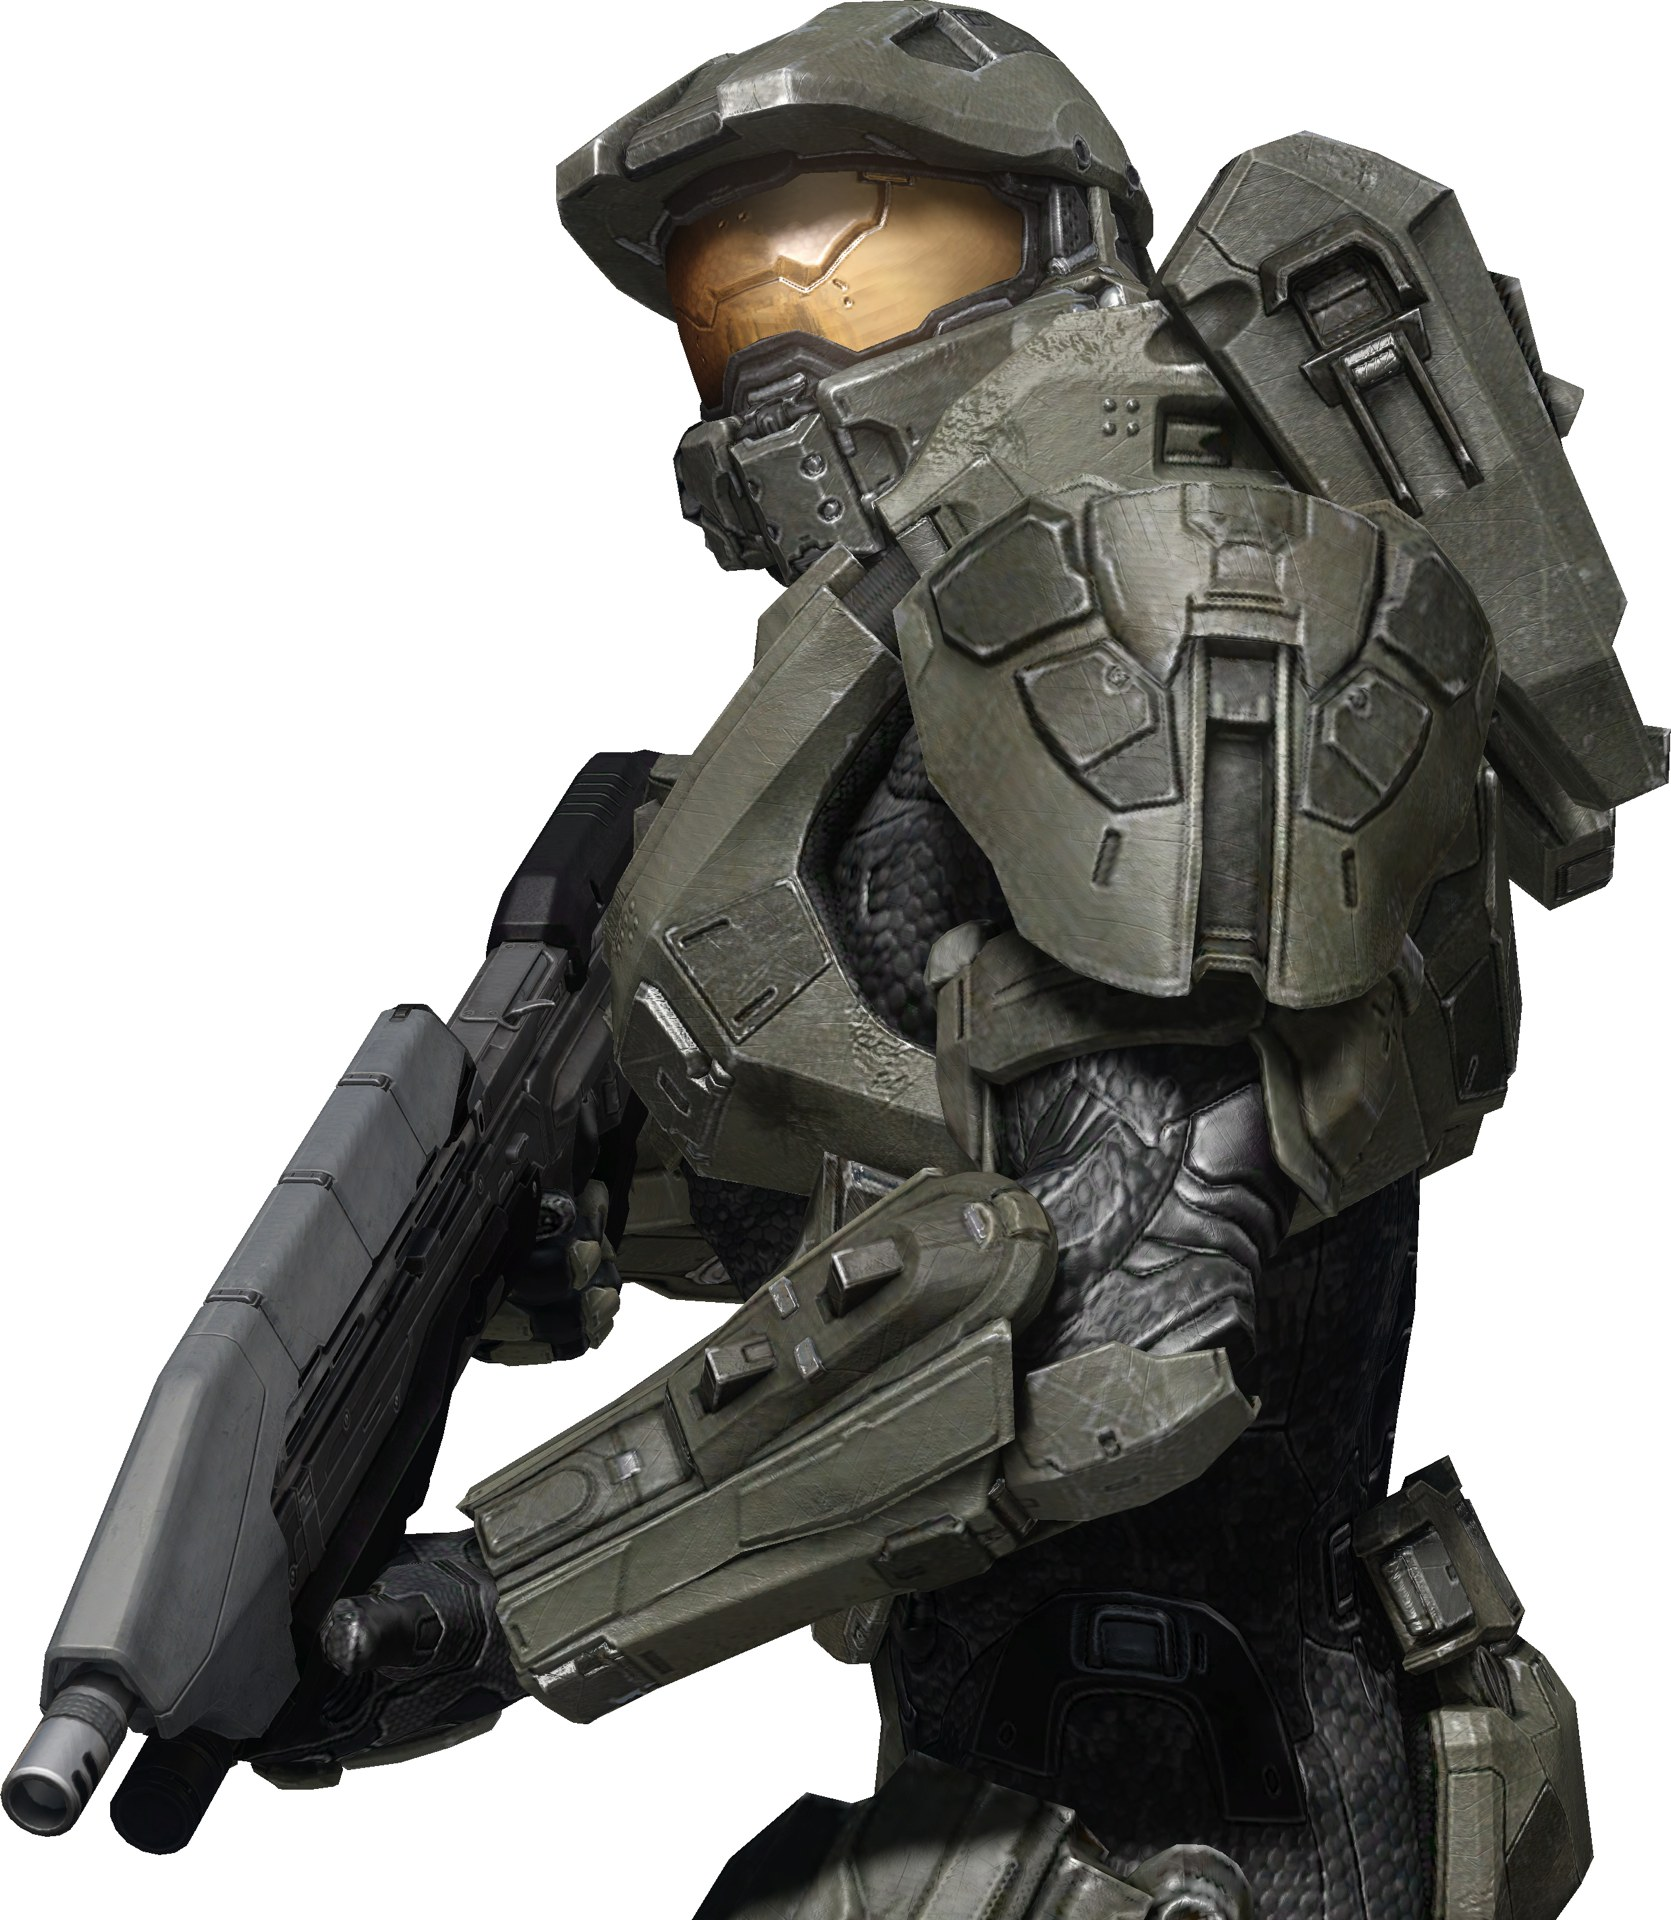 [April Fools 2014] Building Character: Master Chief